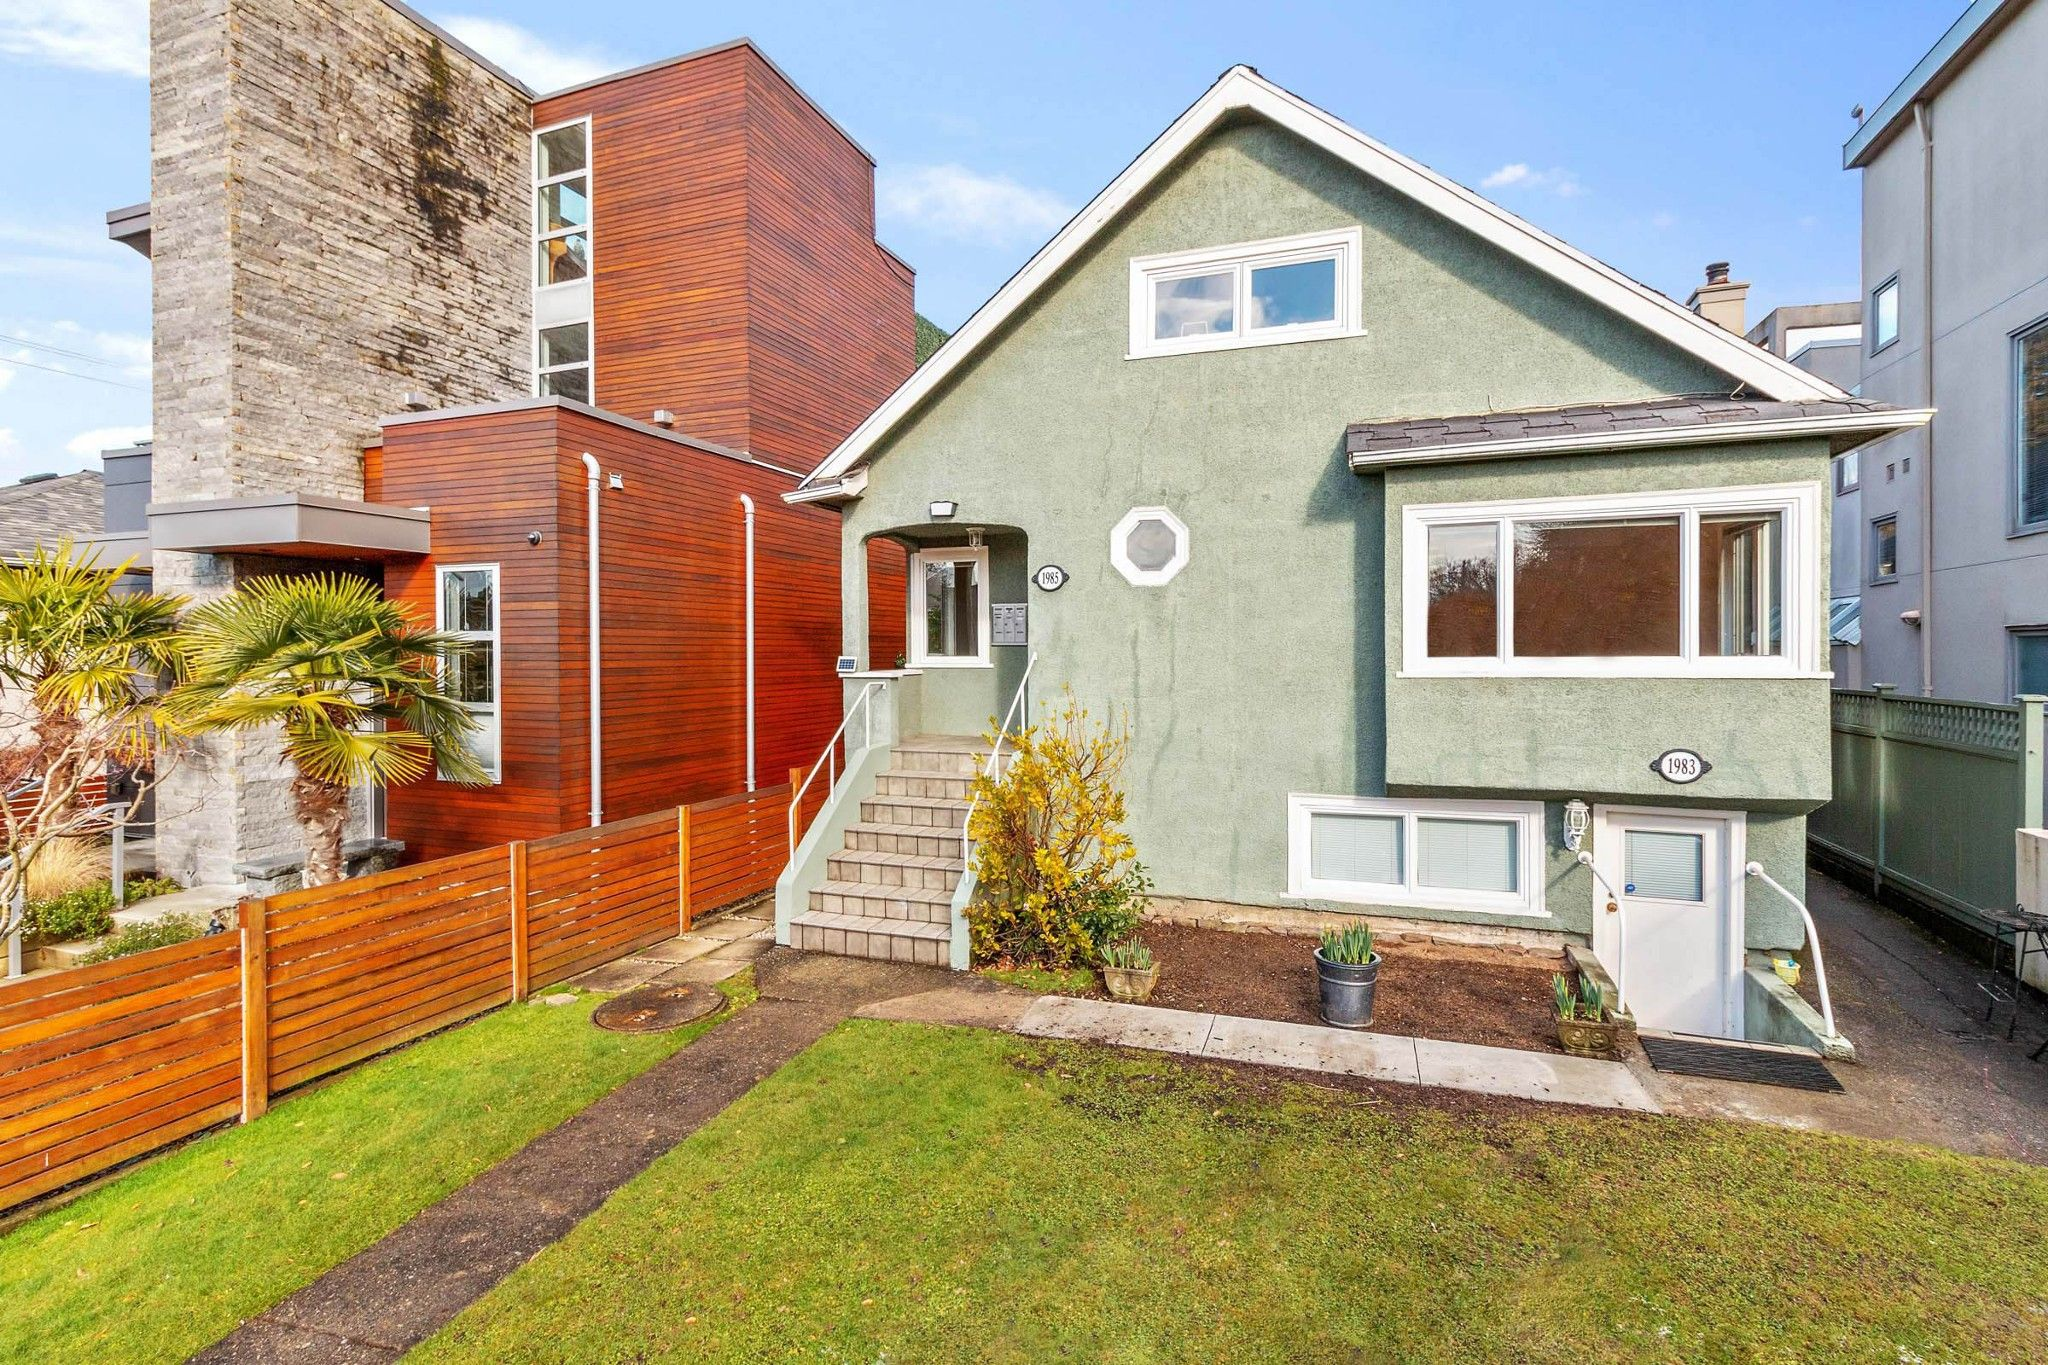 """Main Photo: 1983 - 1985 WHYTE Avenue in Vancouver: Kitsilano Duplex for sale in """"Kits Point"""" (Vancouver West)  : MLS®# R2544328"""